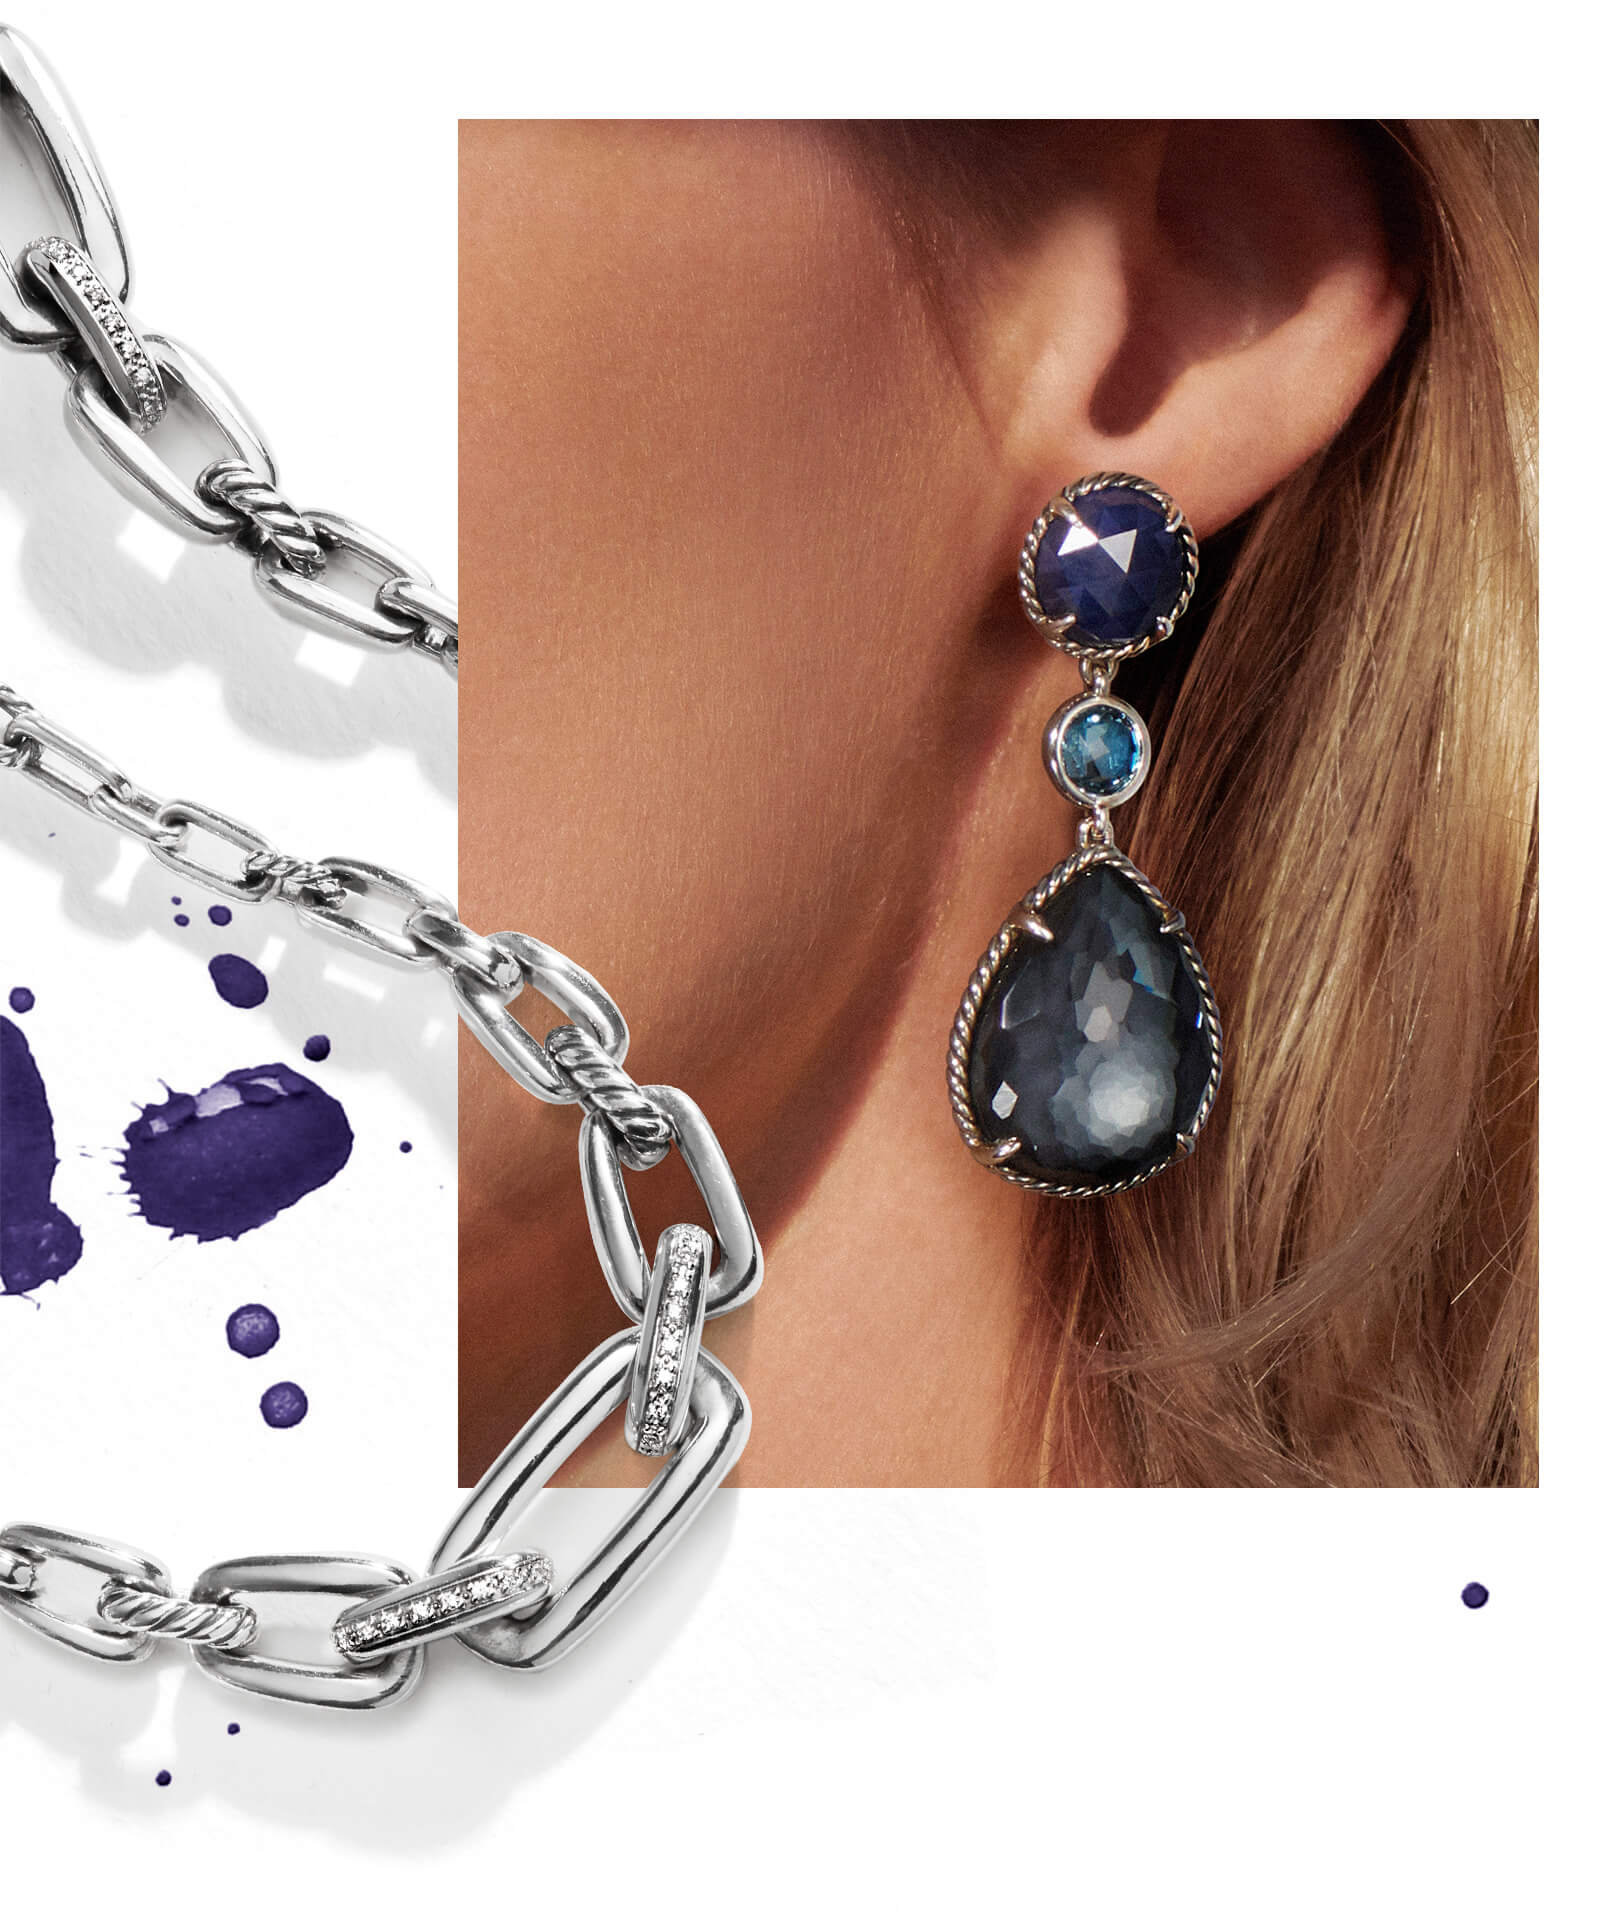 A color photo shows a close-up of a woman's left ear with her long hair pushed behind it. On her ear she is wearing David Yurman Chatelaine teardrop earrings in sterling silver with colored gemstones. Coming out from under the upper-left side and curled over the lower-right side of the photo is a David Yurman Wellesley Link necklace casting long shadows. The jewelry is crafted from sterling silver with pavé white diamonds. Within the loop shape formed by part of the Wellesley Link necklace across the lower corner of the image are different-sized splatters of purple paint.